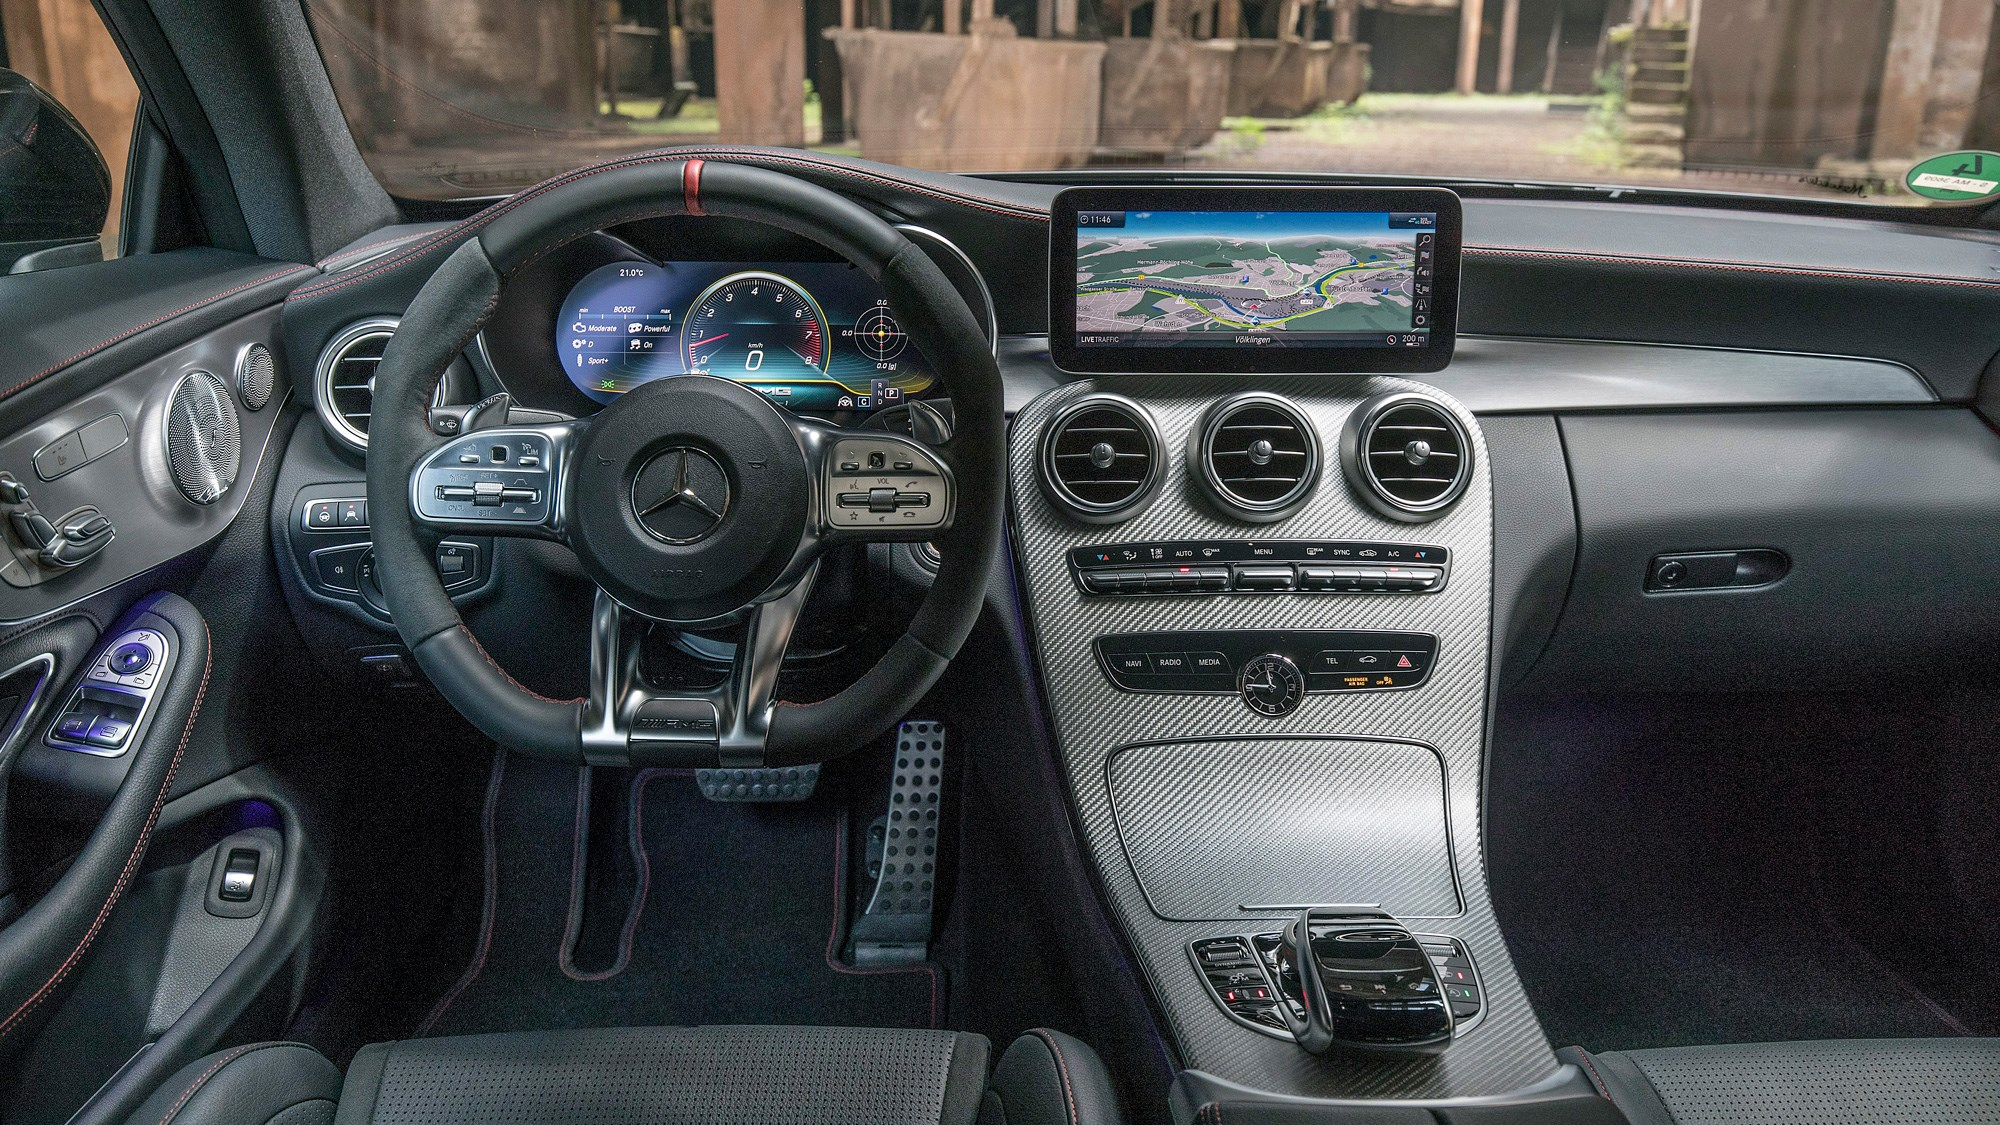 New facelifted 2018 Mercedes-AMG C43 interior